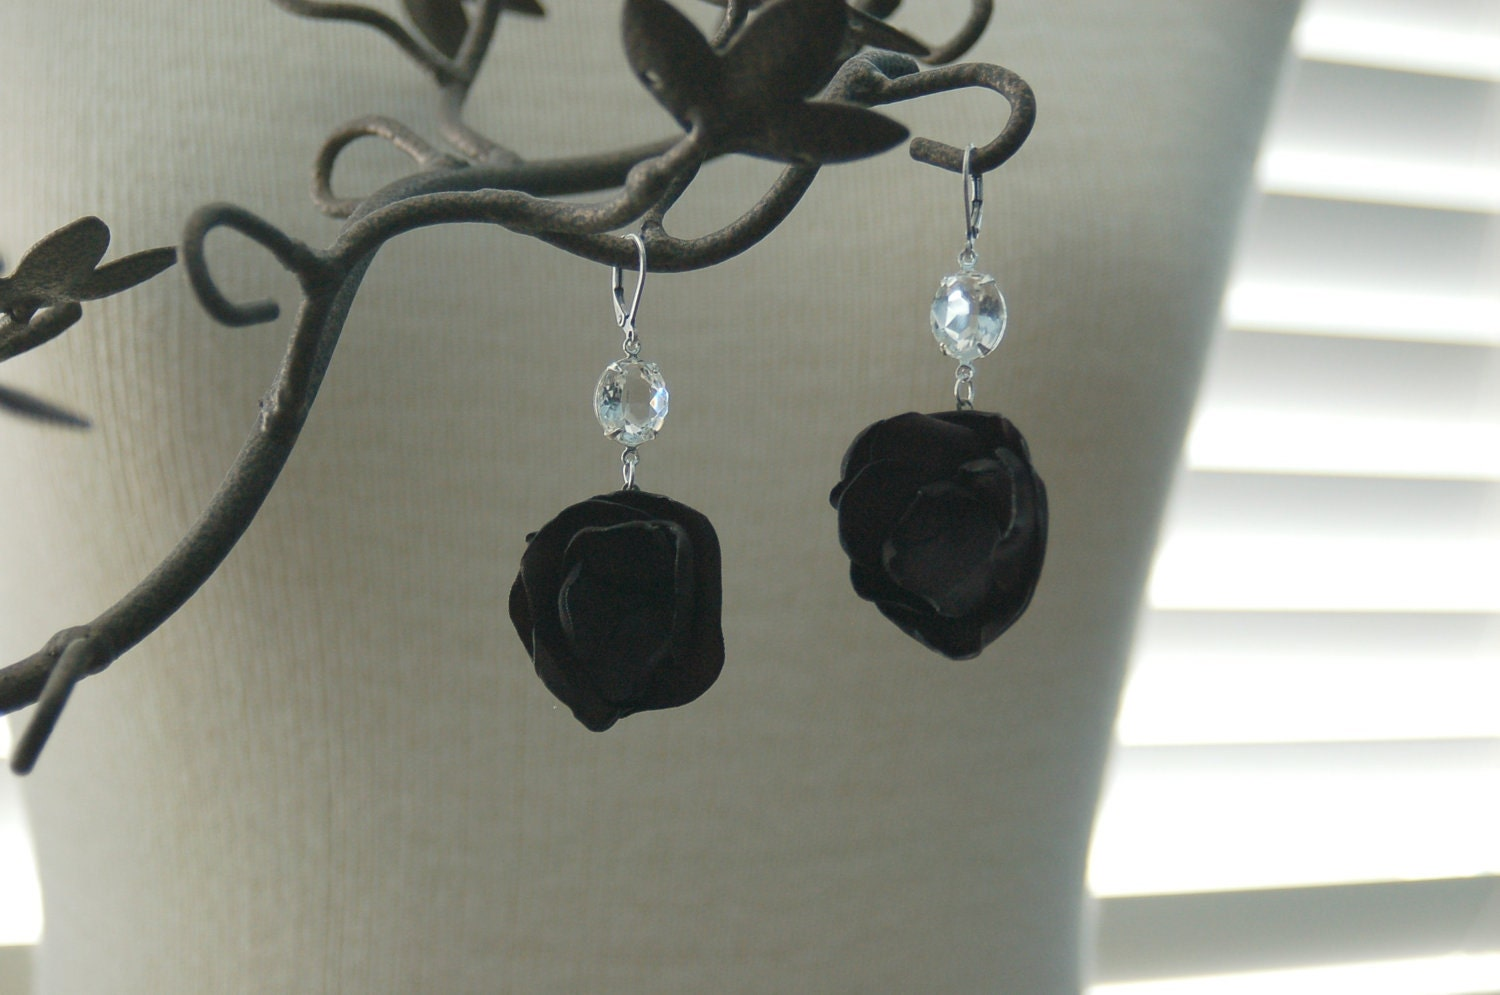 Vintage Flower Earrings - Crystal Clear Vintage Stones and Handmade Satin Fabric Flowers